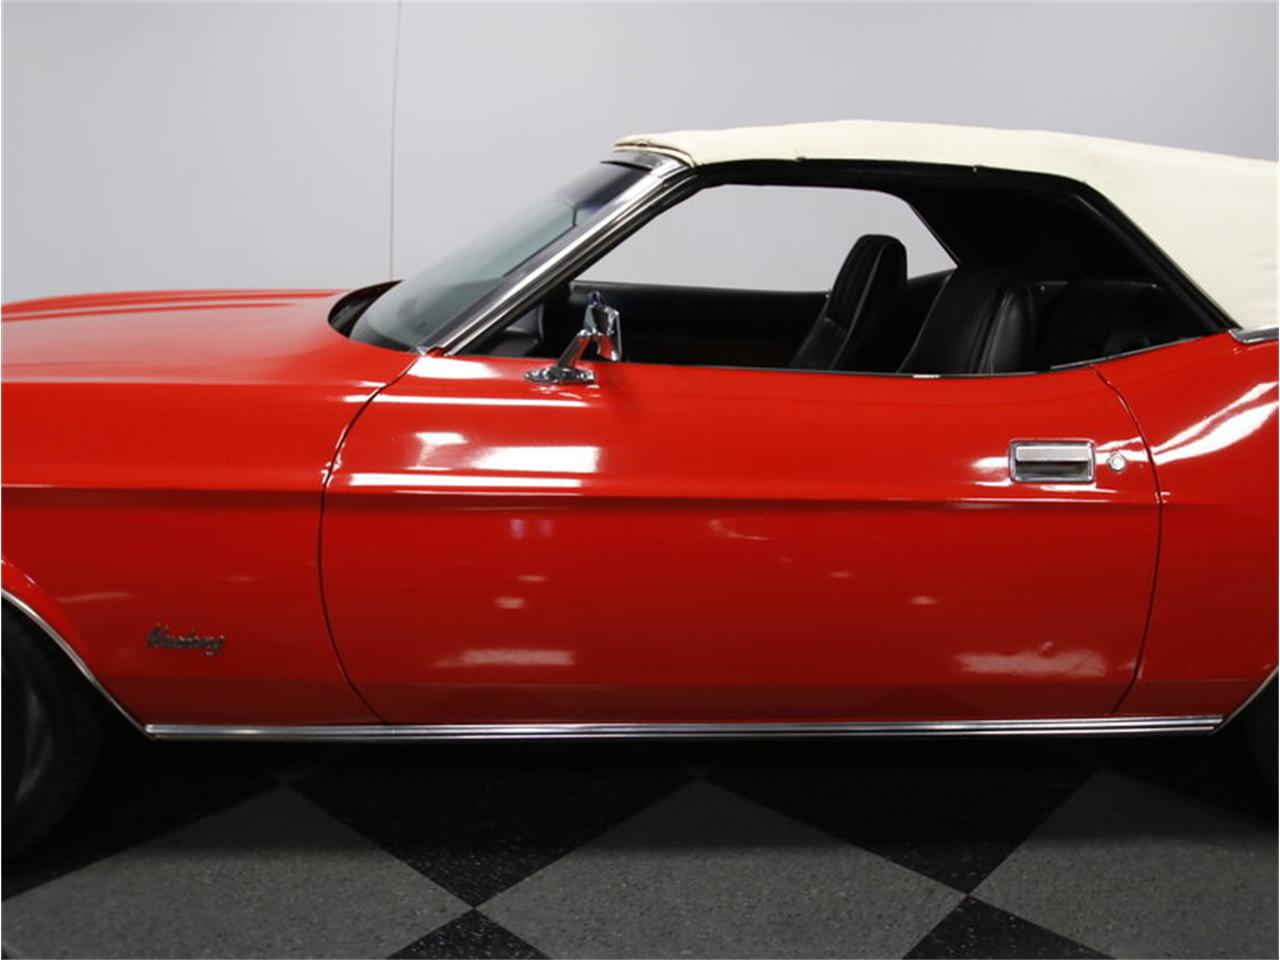 Large Picture of 1973 Mustang 351 Cobra Jet located in Concord North Carolina - $24,995.00 - KISW